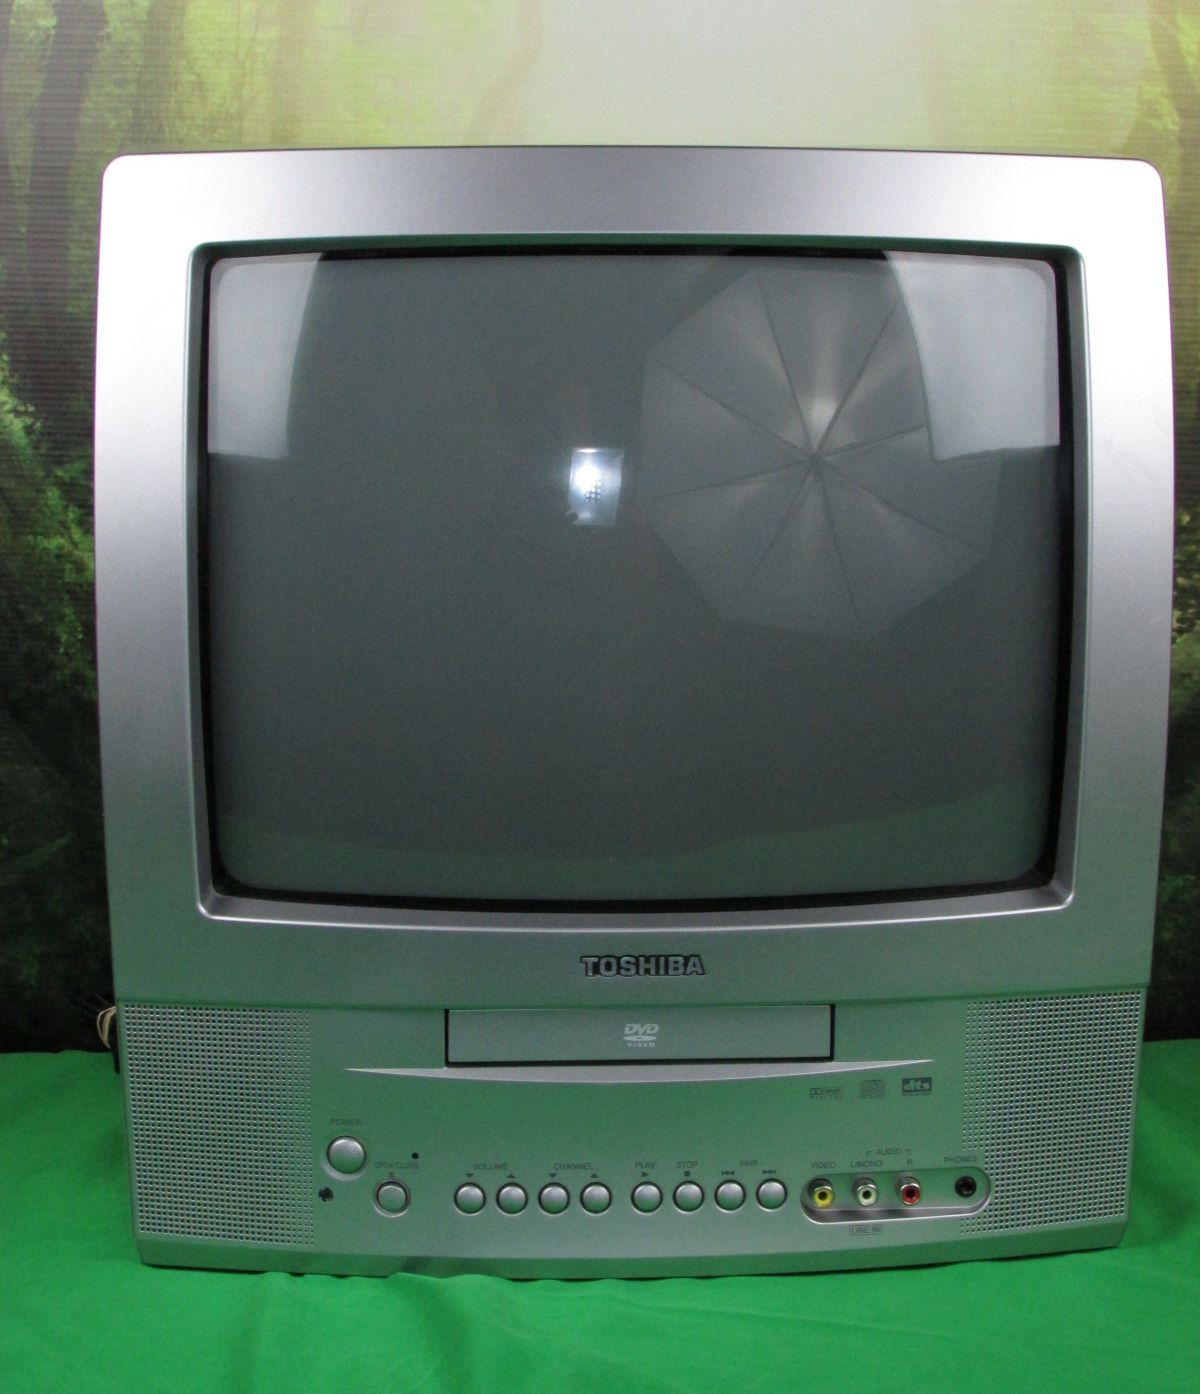 teac tv with built in dvd player manual